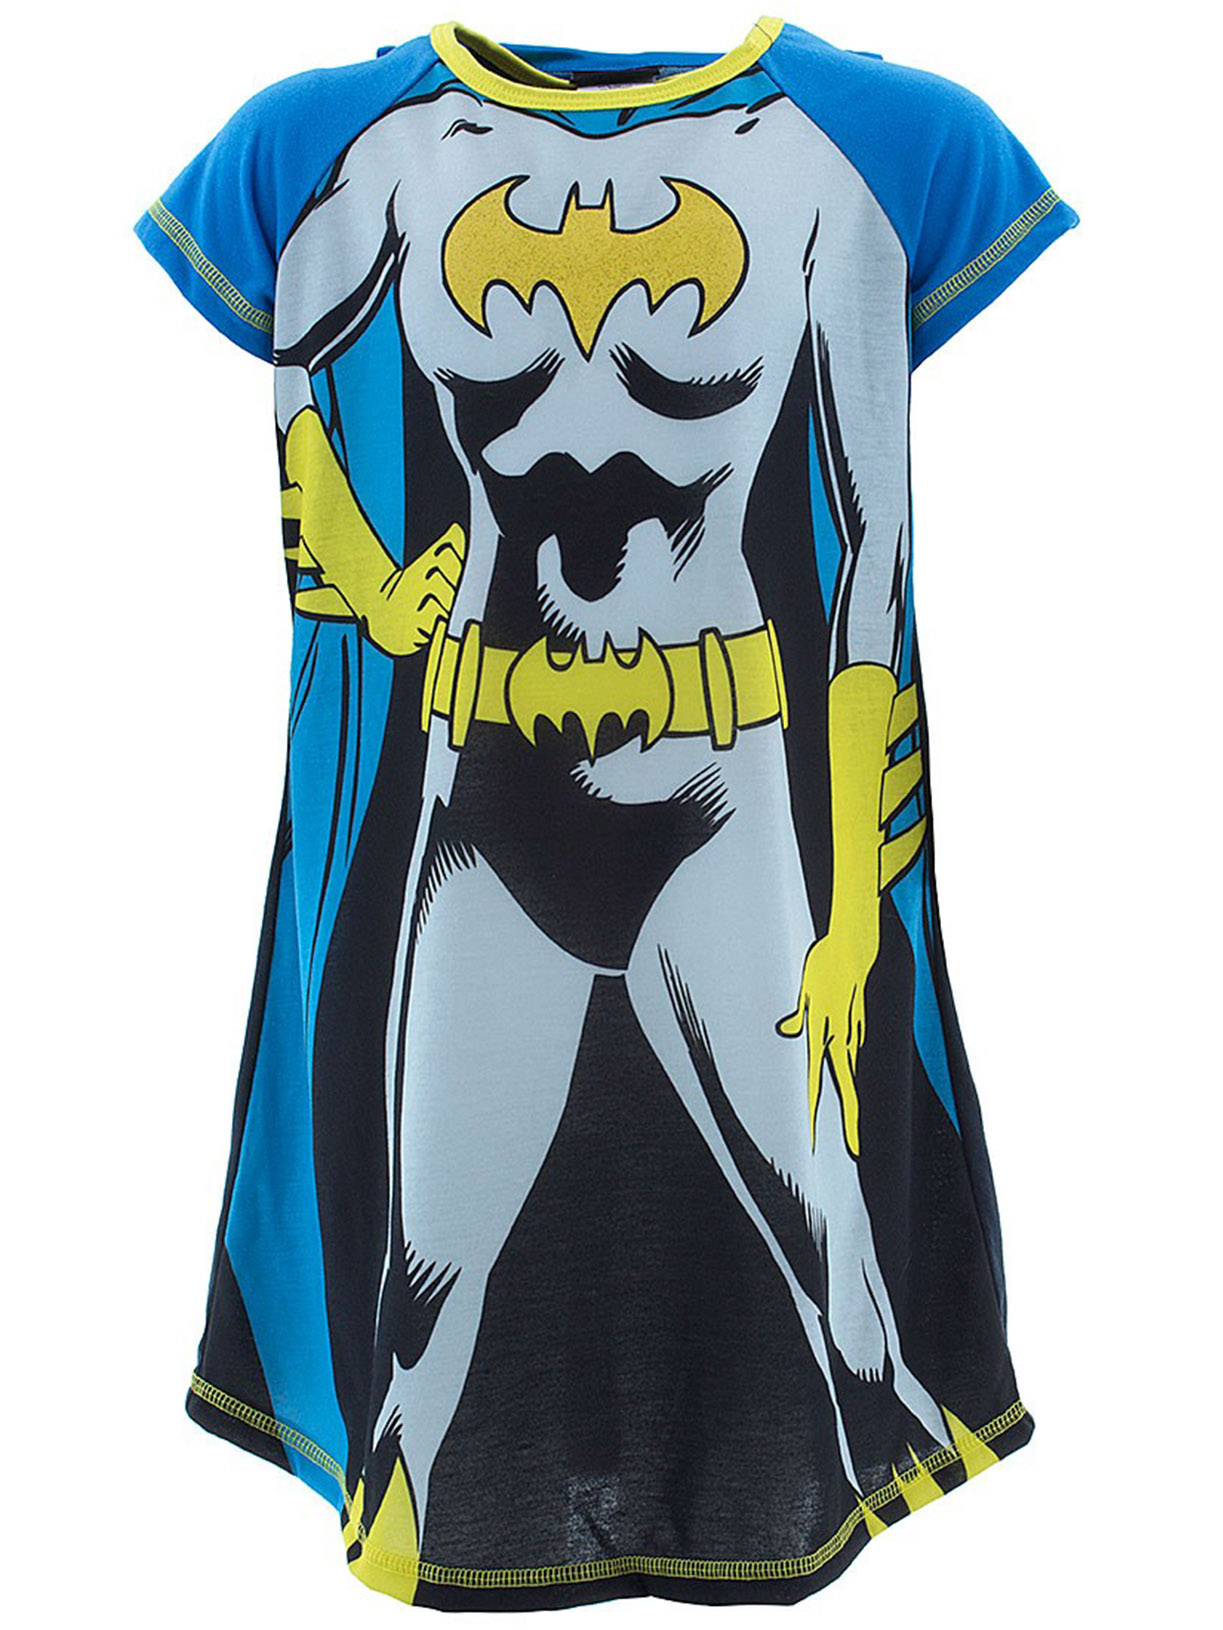 Batgirl Blue Girls Nightshirt with Cape